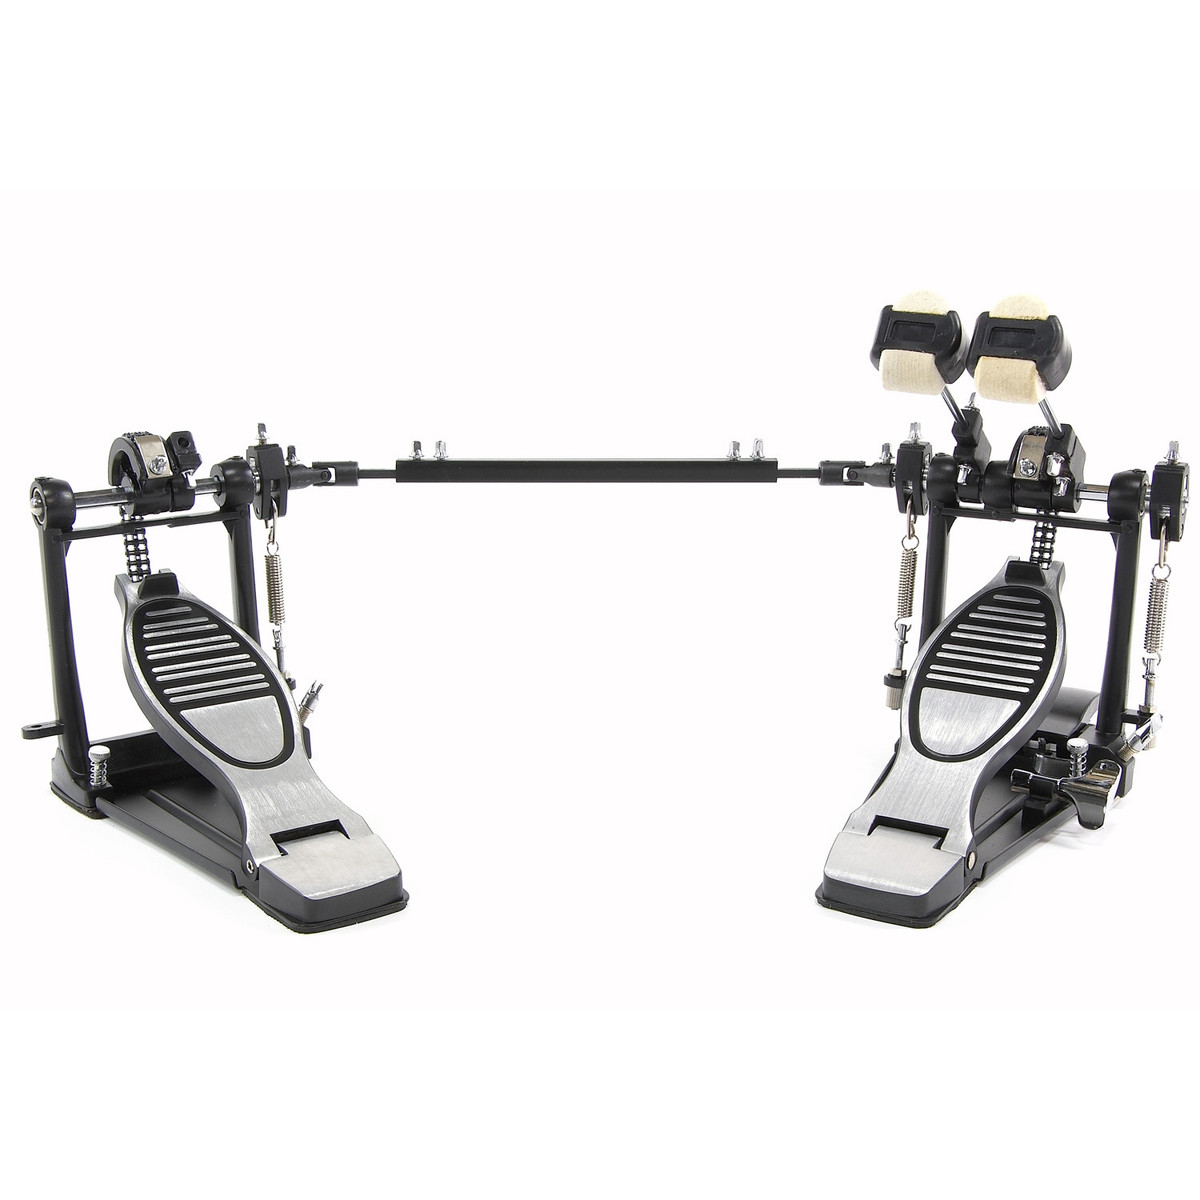 double kick drum pedal with floorplate box opened at. Black Bedroom Furniture Sets. Home Design Ideas